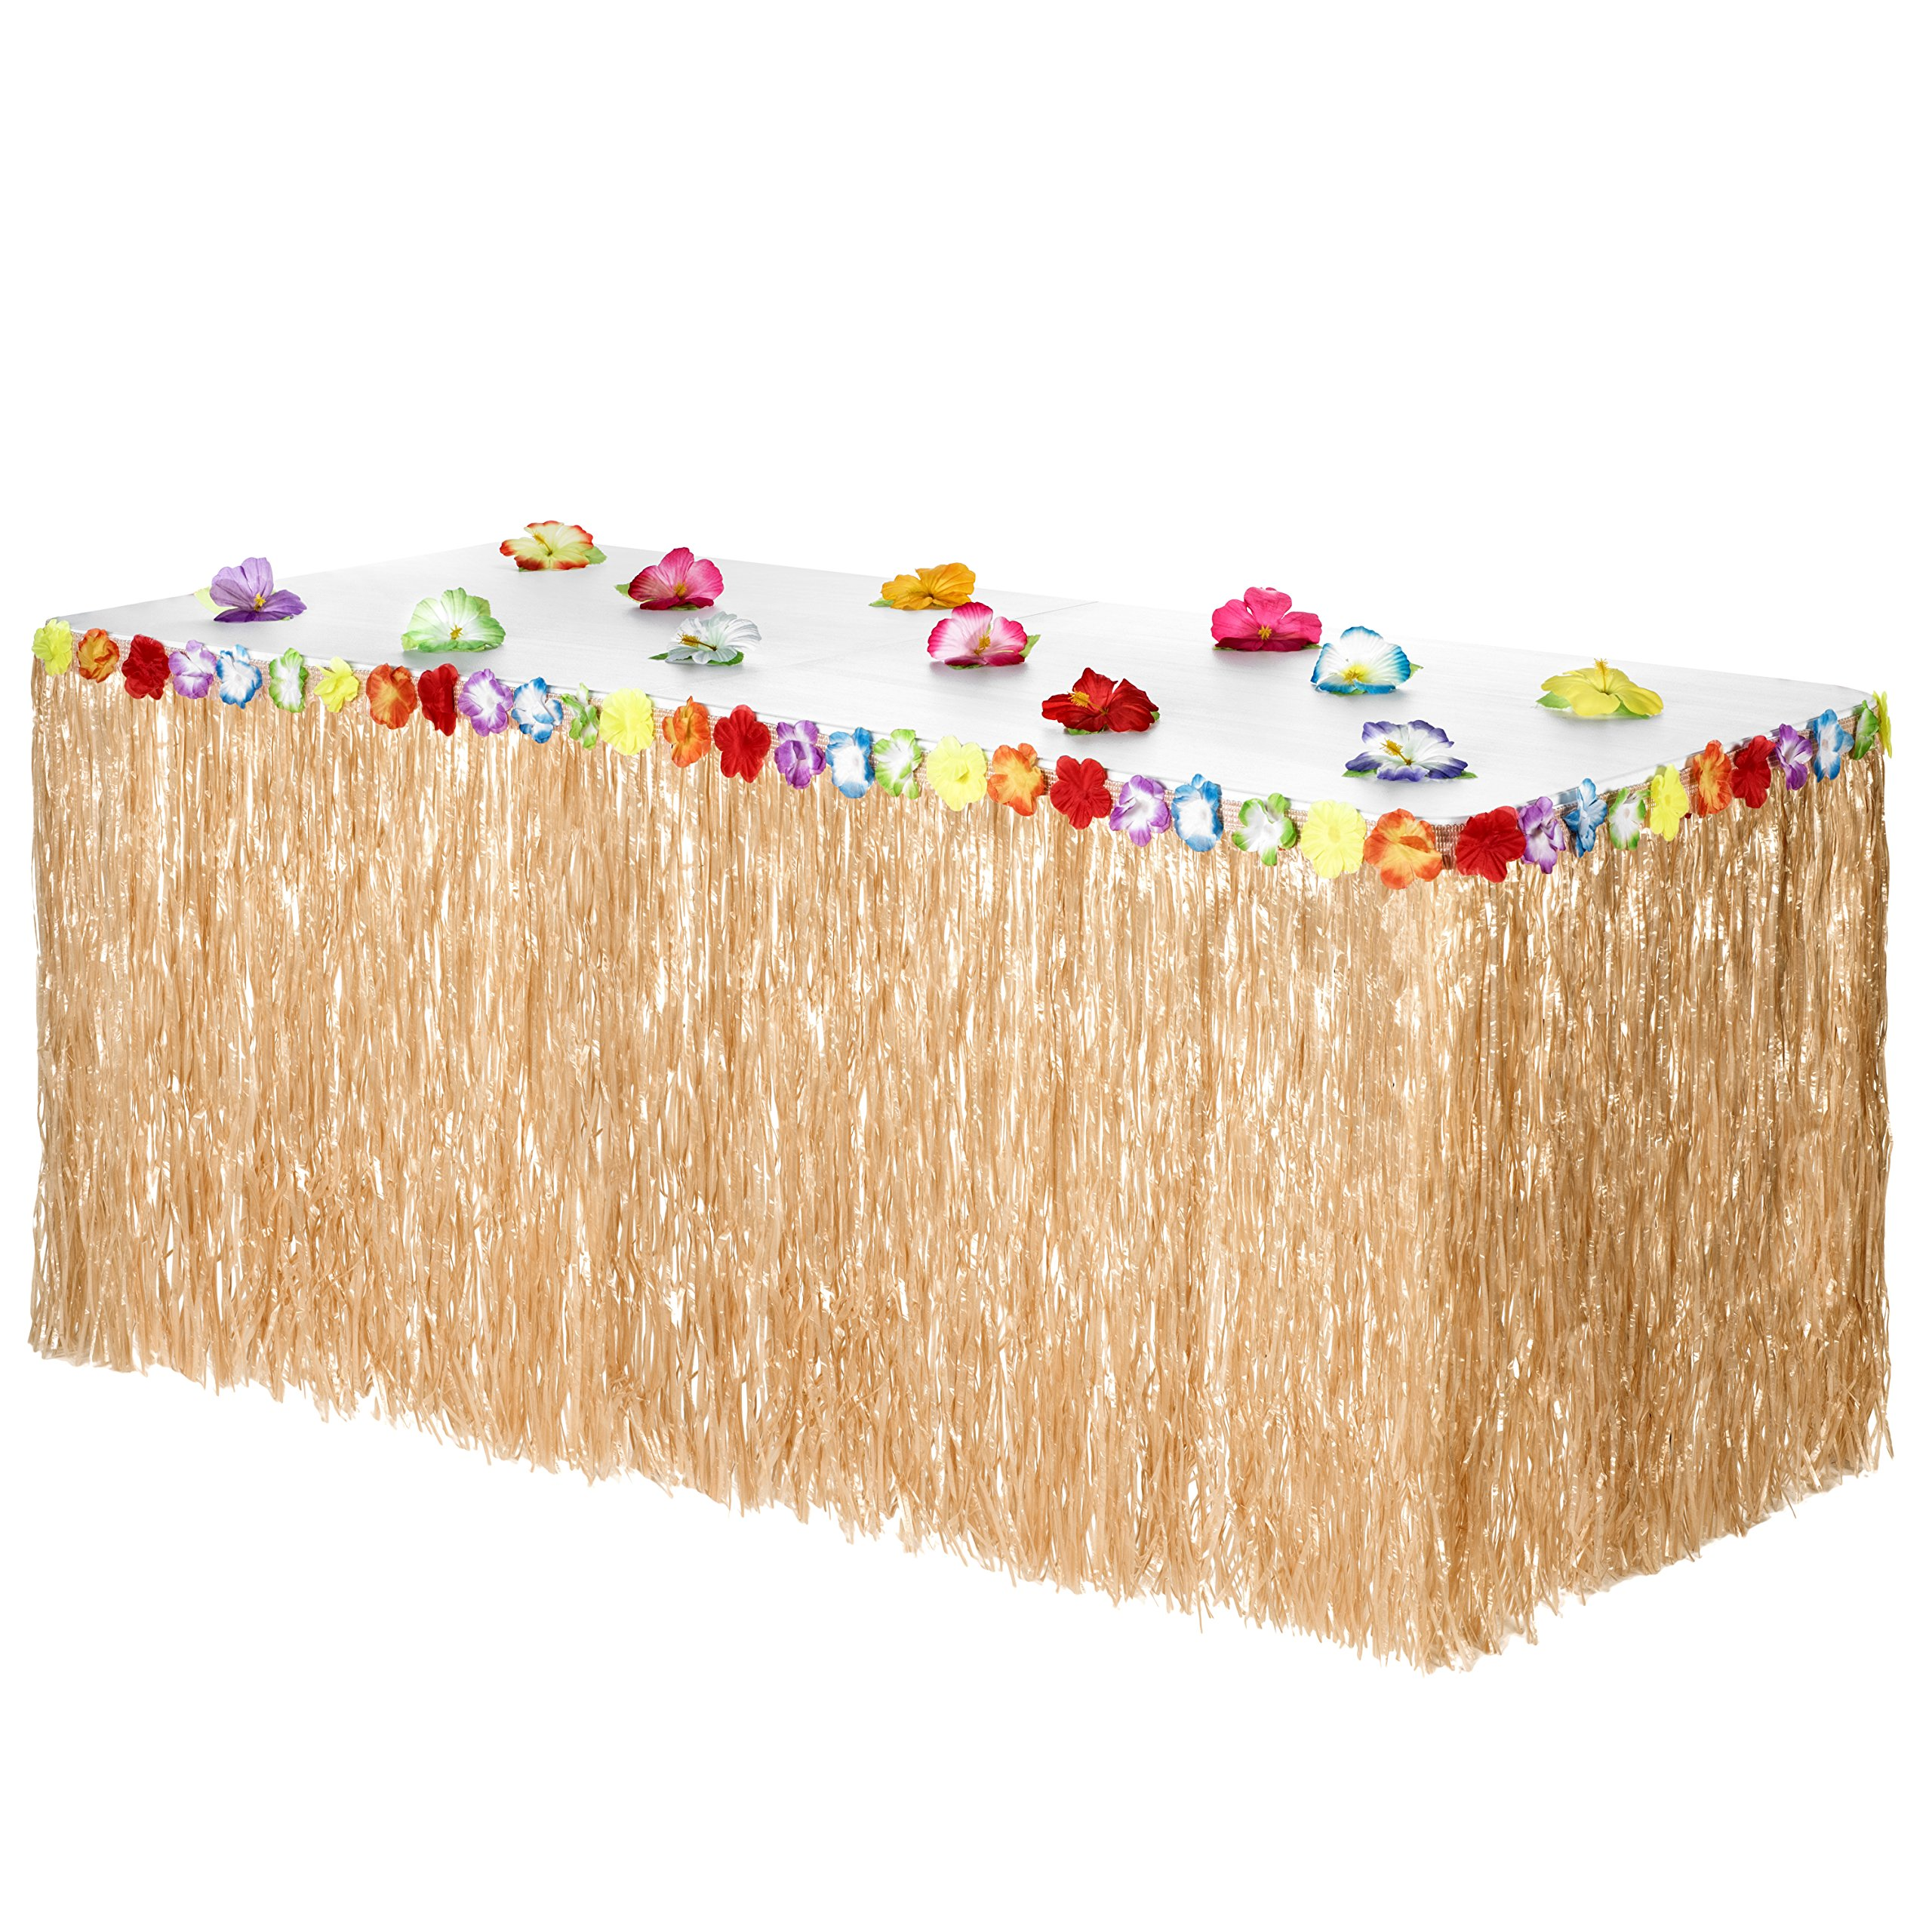 Hawaiian Luau Grass Table Skirt: BONUS 12 Hibiscus Flowers | Includes Adhesive | Perfect Beach, Tiki, Tropical, Island, Party, Luau Decoration 9ft by Luau Essentials